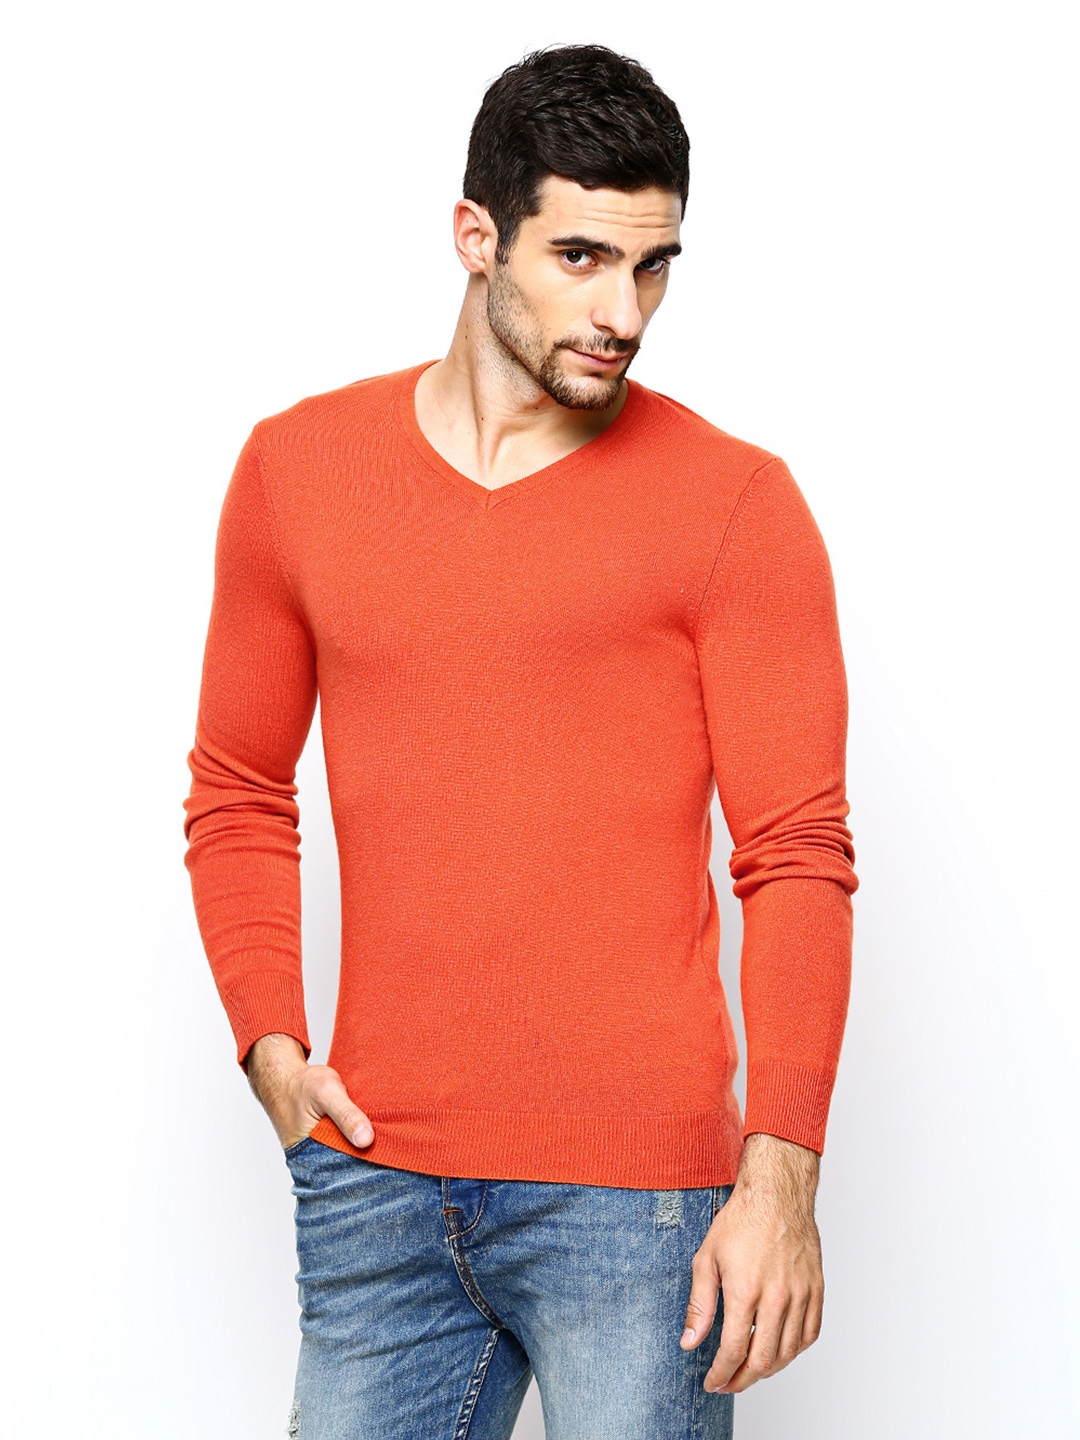 Discover the latest range of men's knitwear with ASOS. Choose from men's sweaters, pullovers and cardigans in a range of styles and colors. Shop now at ASOS.